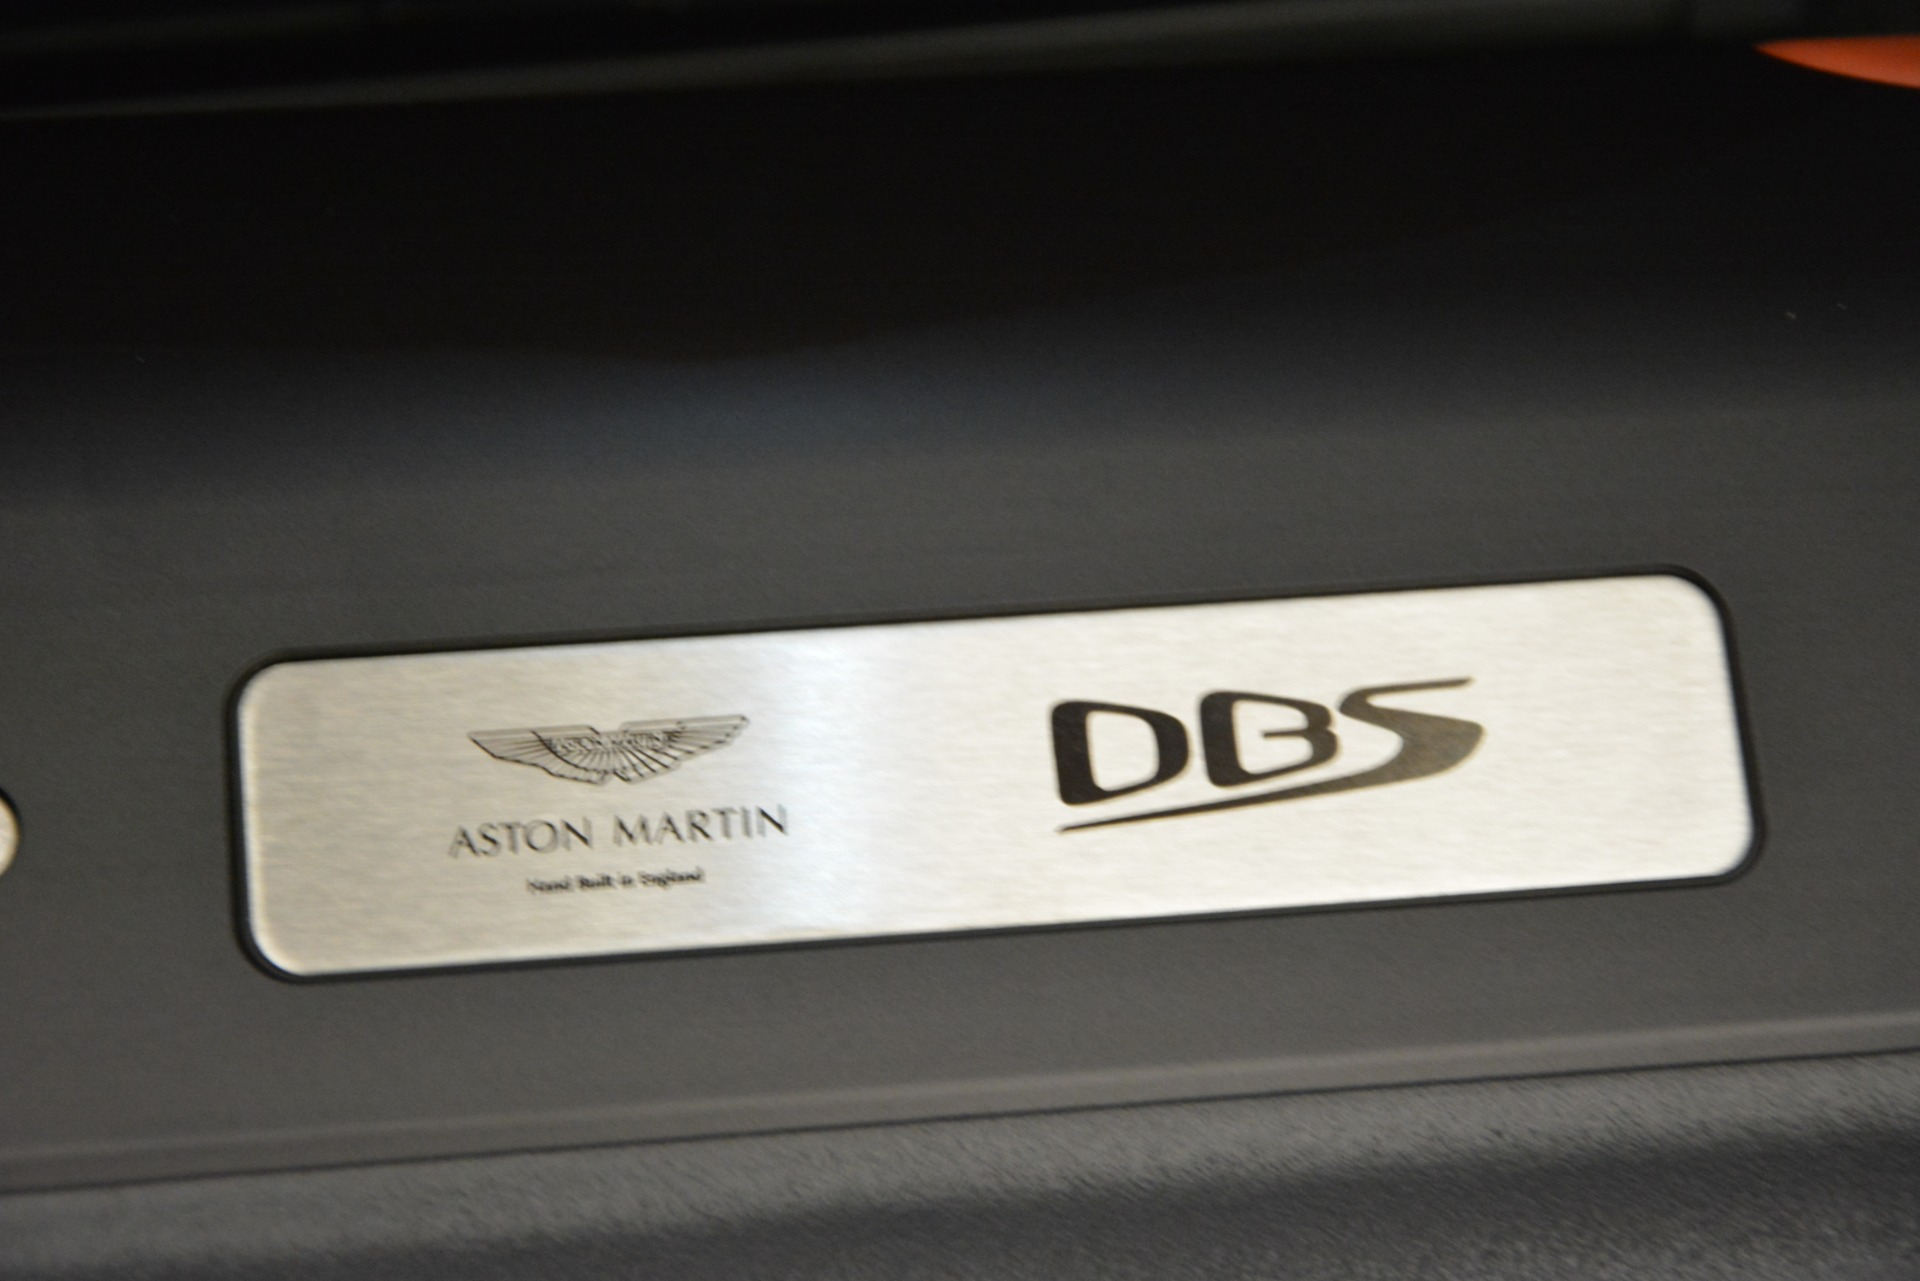 New 2019 Aston Martin DBS Superleggera For Sale In Westport, CT 2827_p27